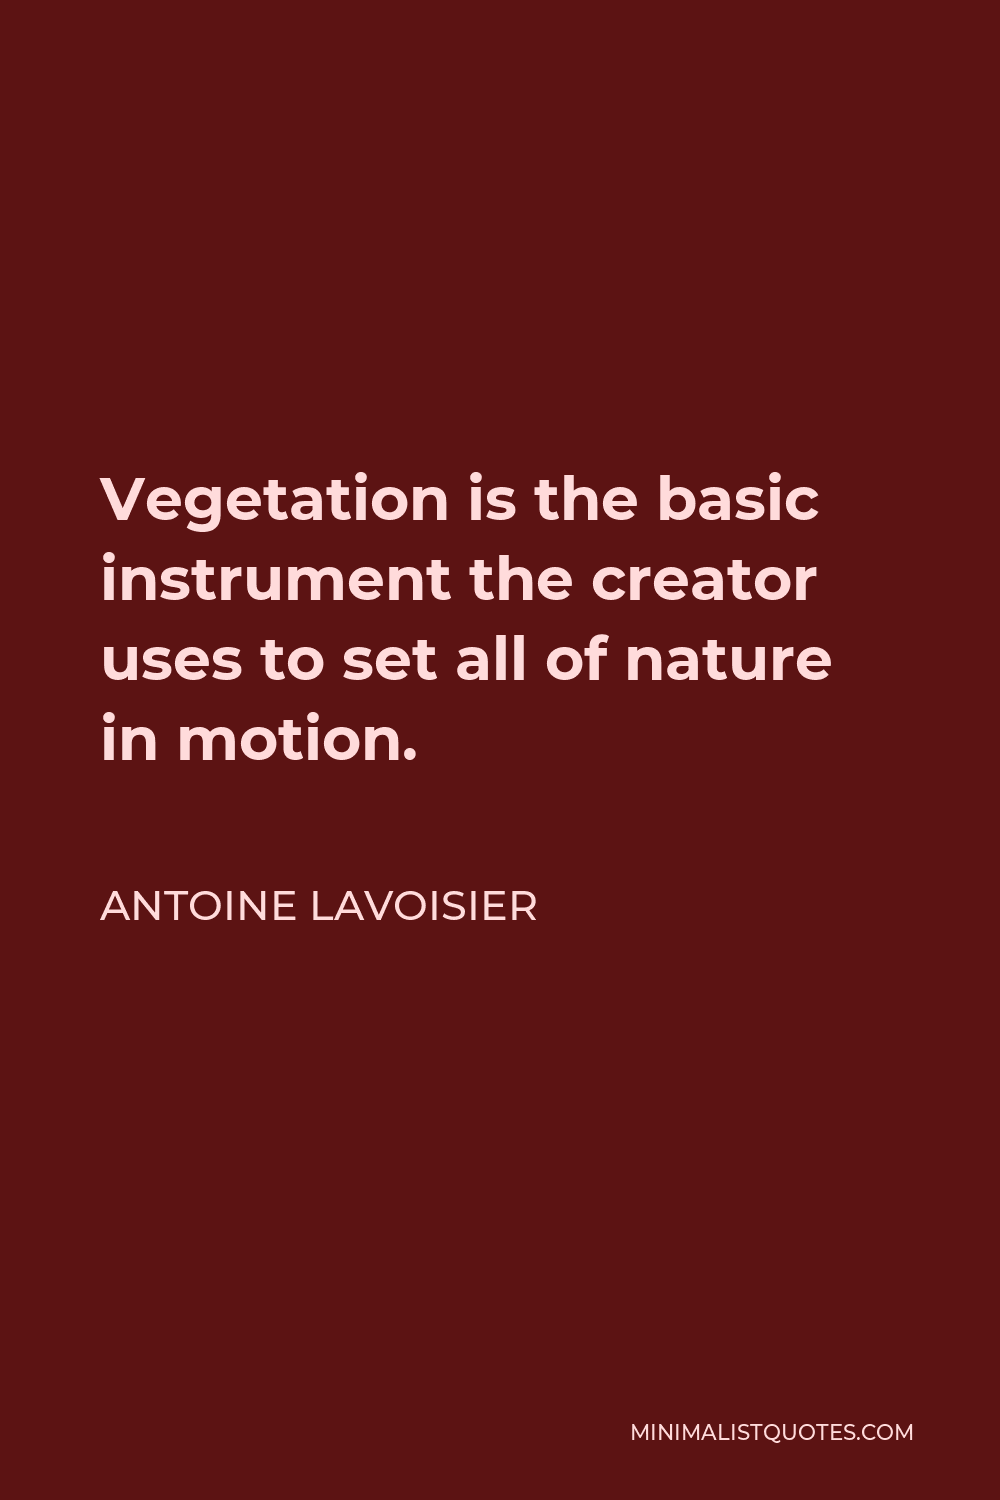 Antoine Lavoisier Quote - Vegetation is the basic instrument the creator uses to set all of nature in motion.